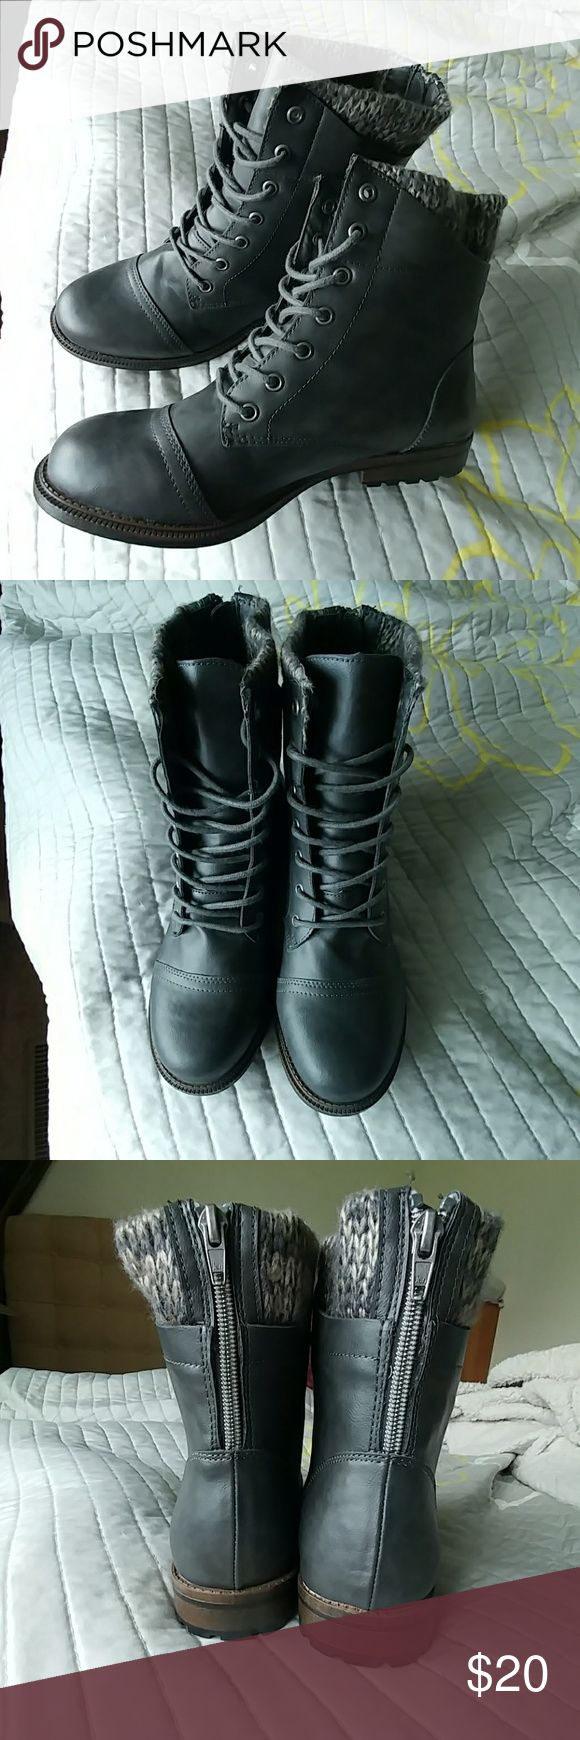 Women's grey boots Size ten, never worn! Brand is faded glory Shoes